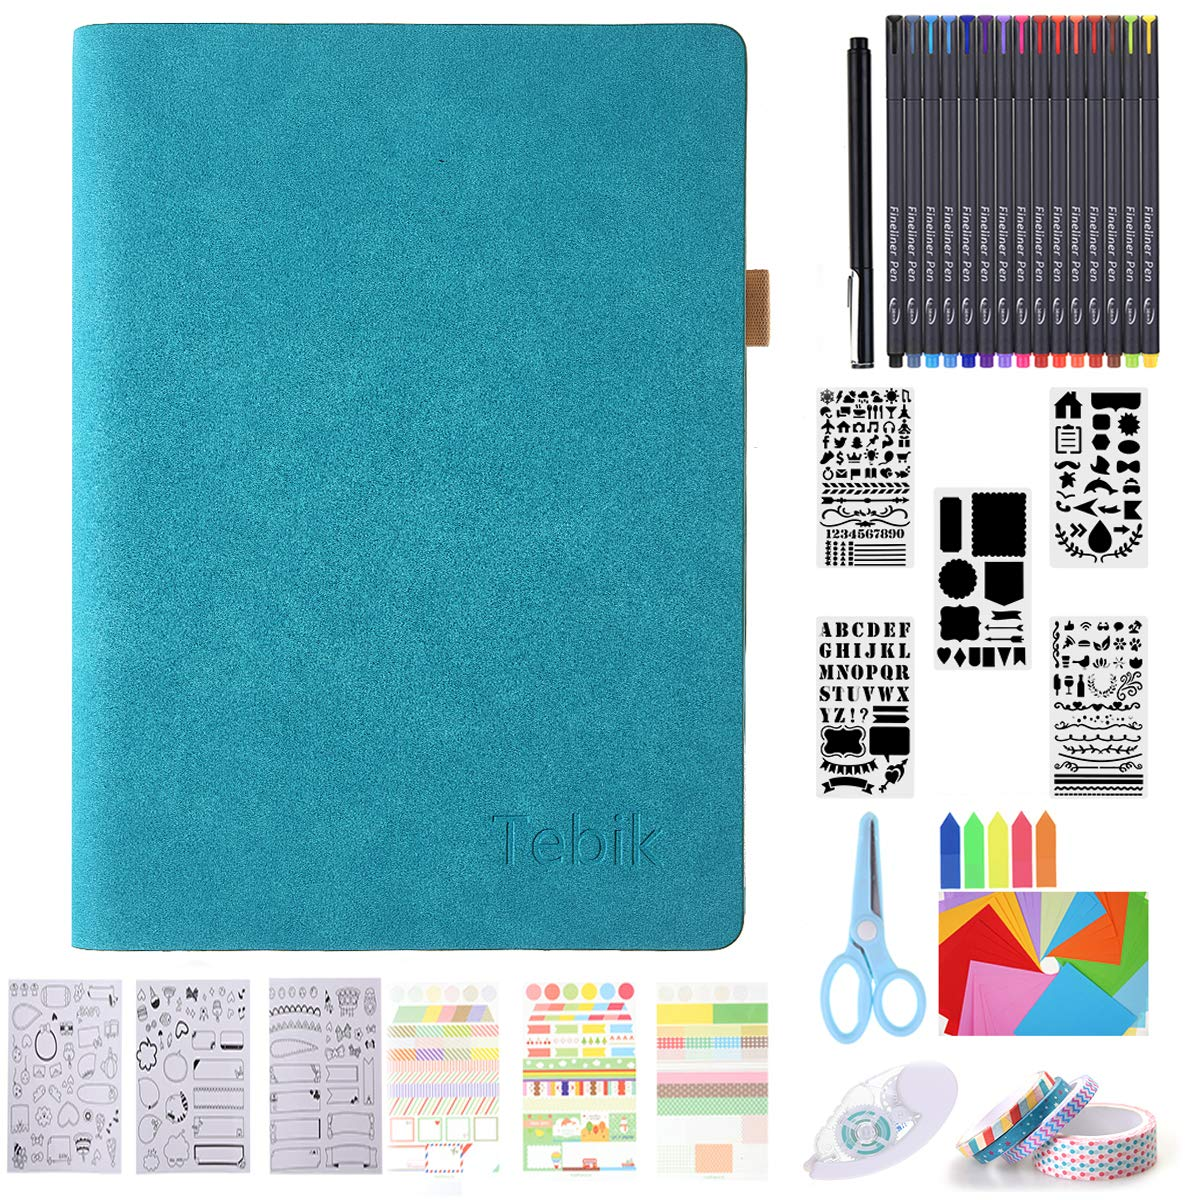 Bullet Dotted Journal Kit, Tebik A5 Loose Leaf Leather Journal with Colored Pens,Reusable Stencils,Stickers,Washi Glue Tape,Scissors,Colorful Paper for Journal Writing Planner Art Office by Tebik